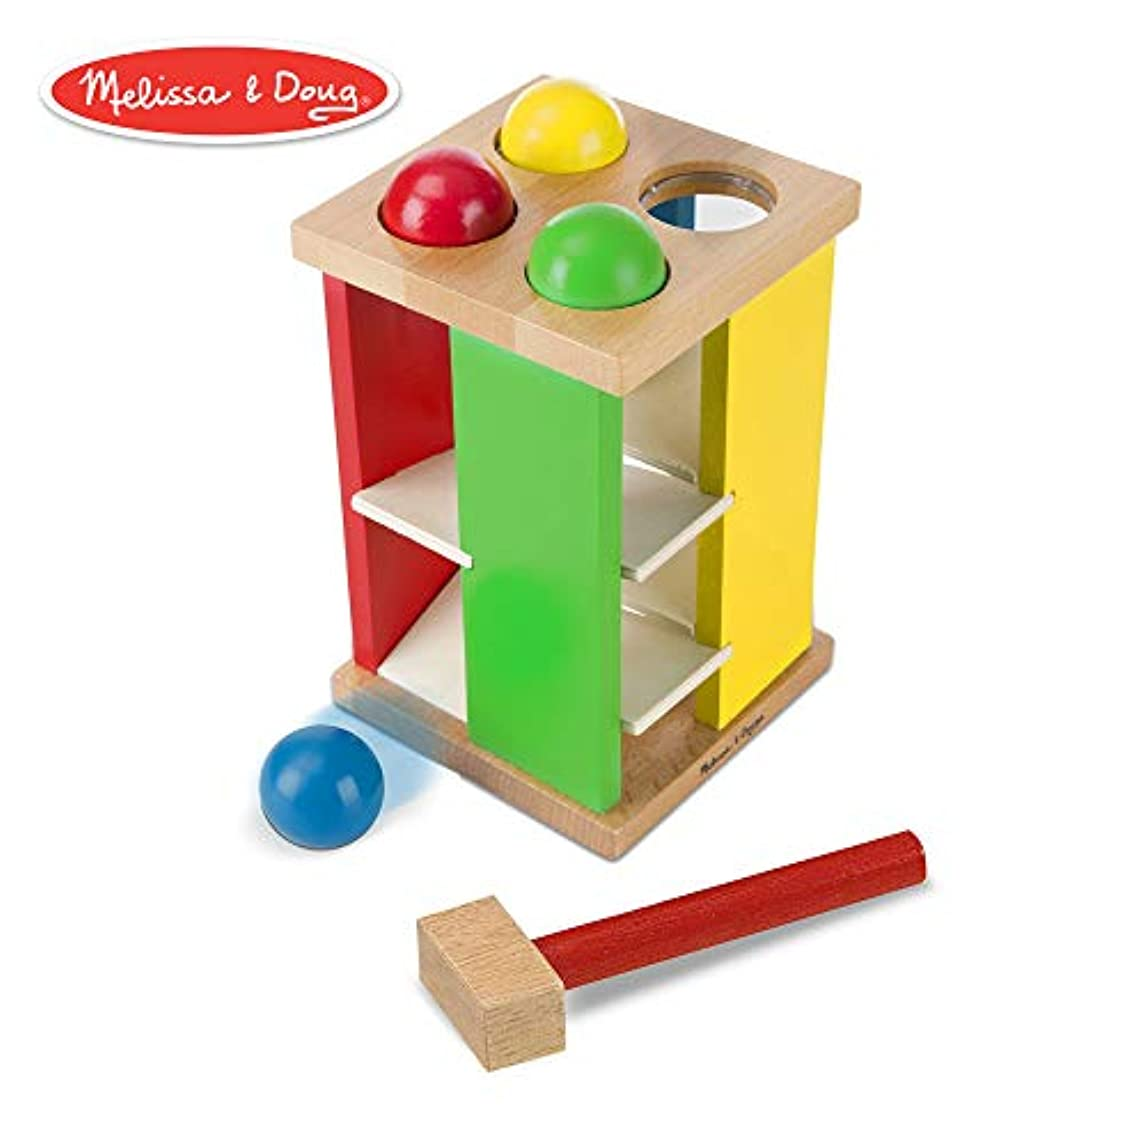 Melissa & Doug Pound & Roll Tower (Developmental Toy, Classic Pounding Toy, Bright-Colored Pieces, Durable Construction)